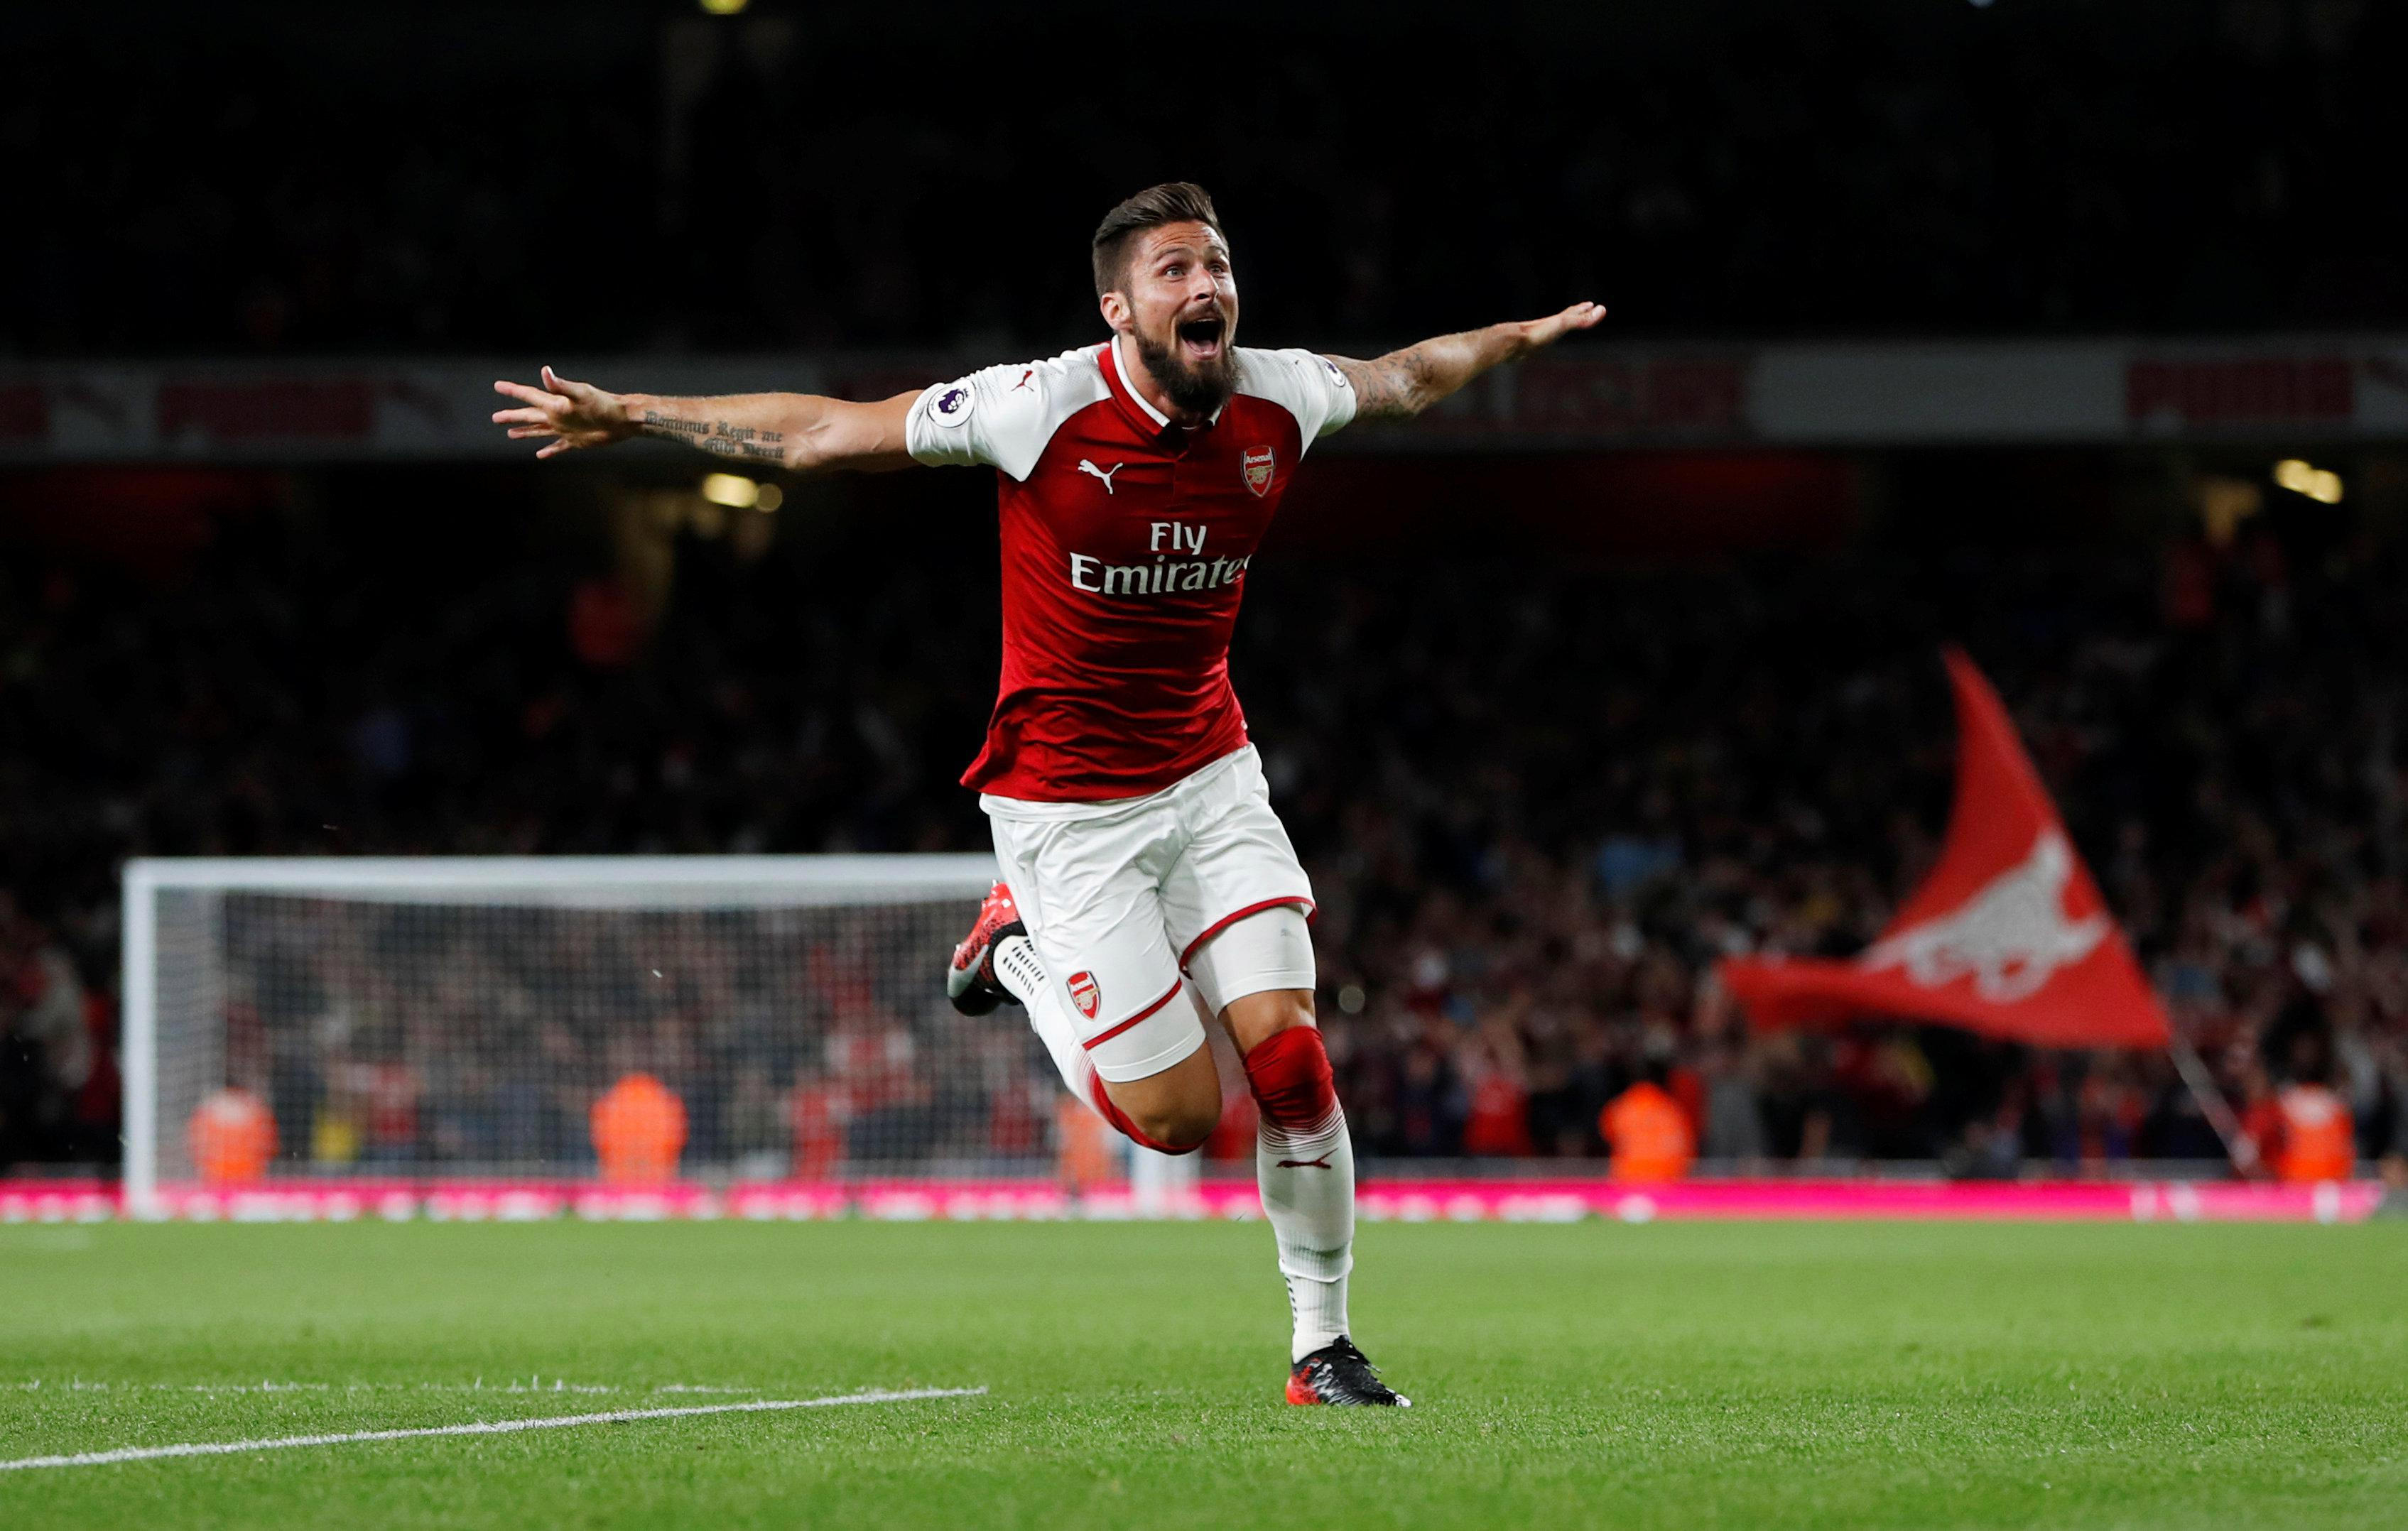 Olivier Giroud secured a stunning late winner for Arsenal against Leicester